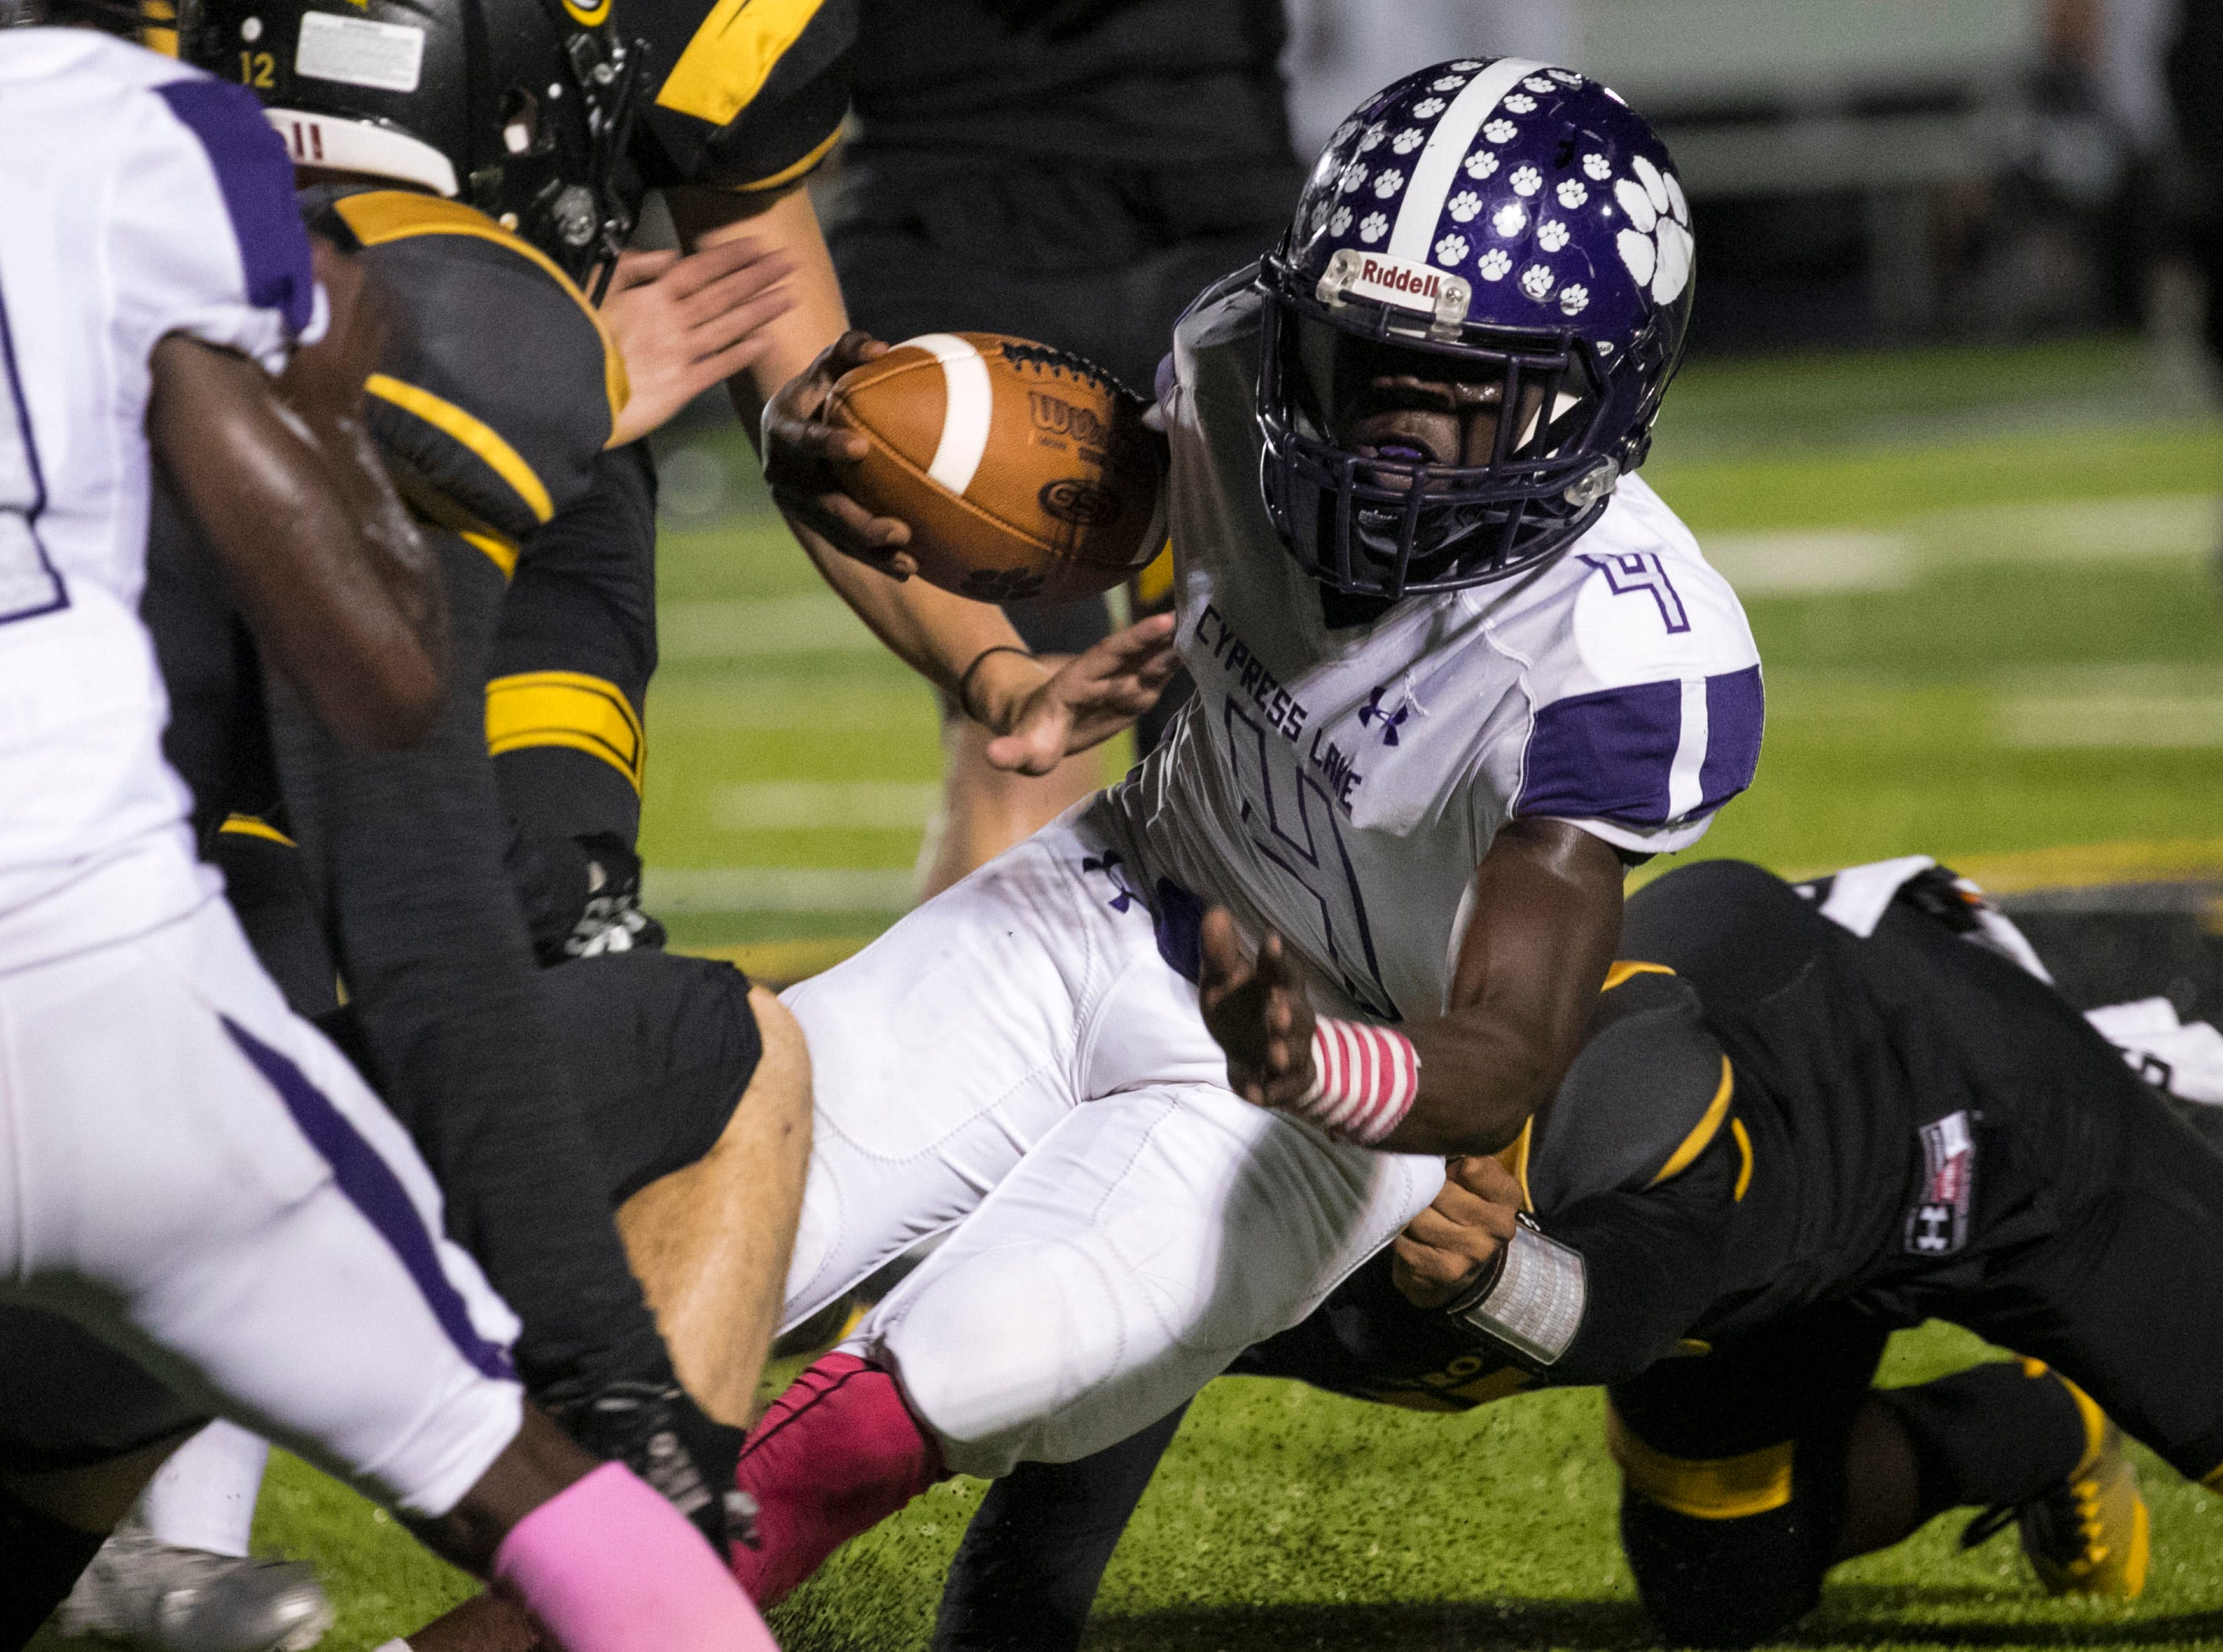 Koby Moore of Cypress Lake is brought down after a run by a Bishop Verot defender on Friday night, October 5, 2018, at Bishop Verot High School.